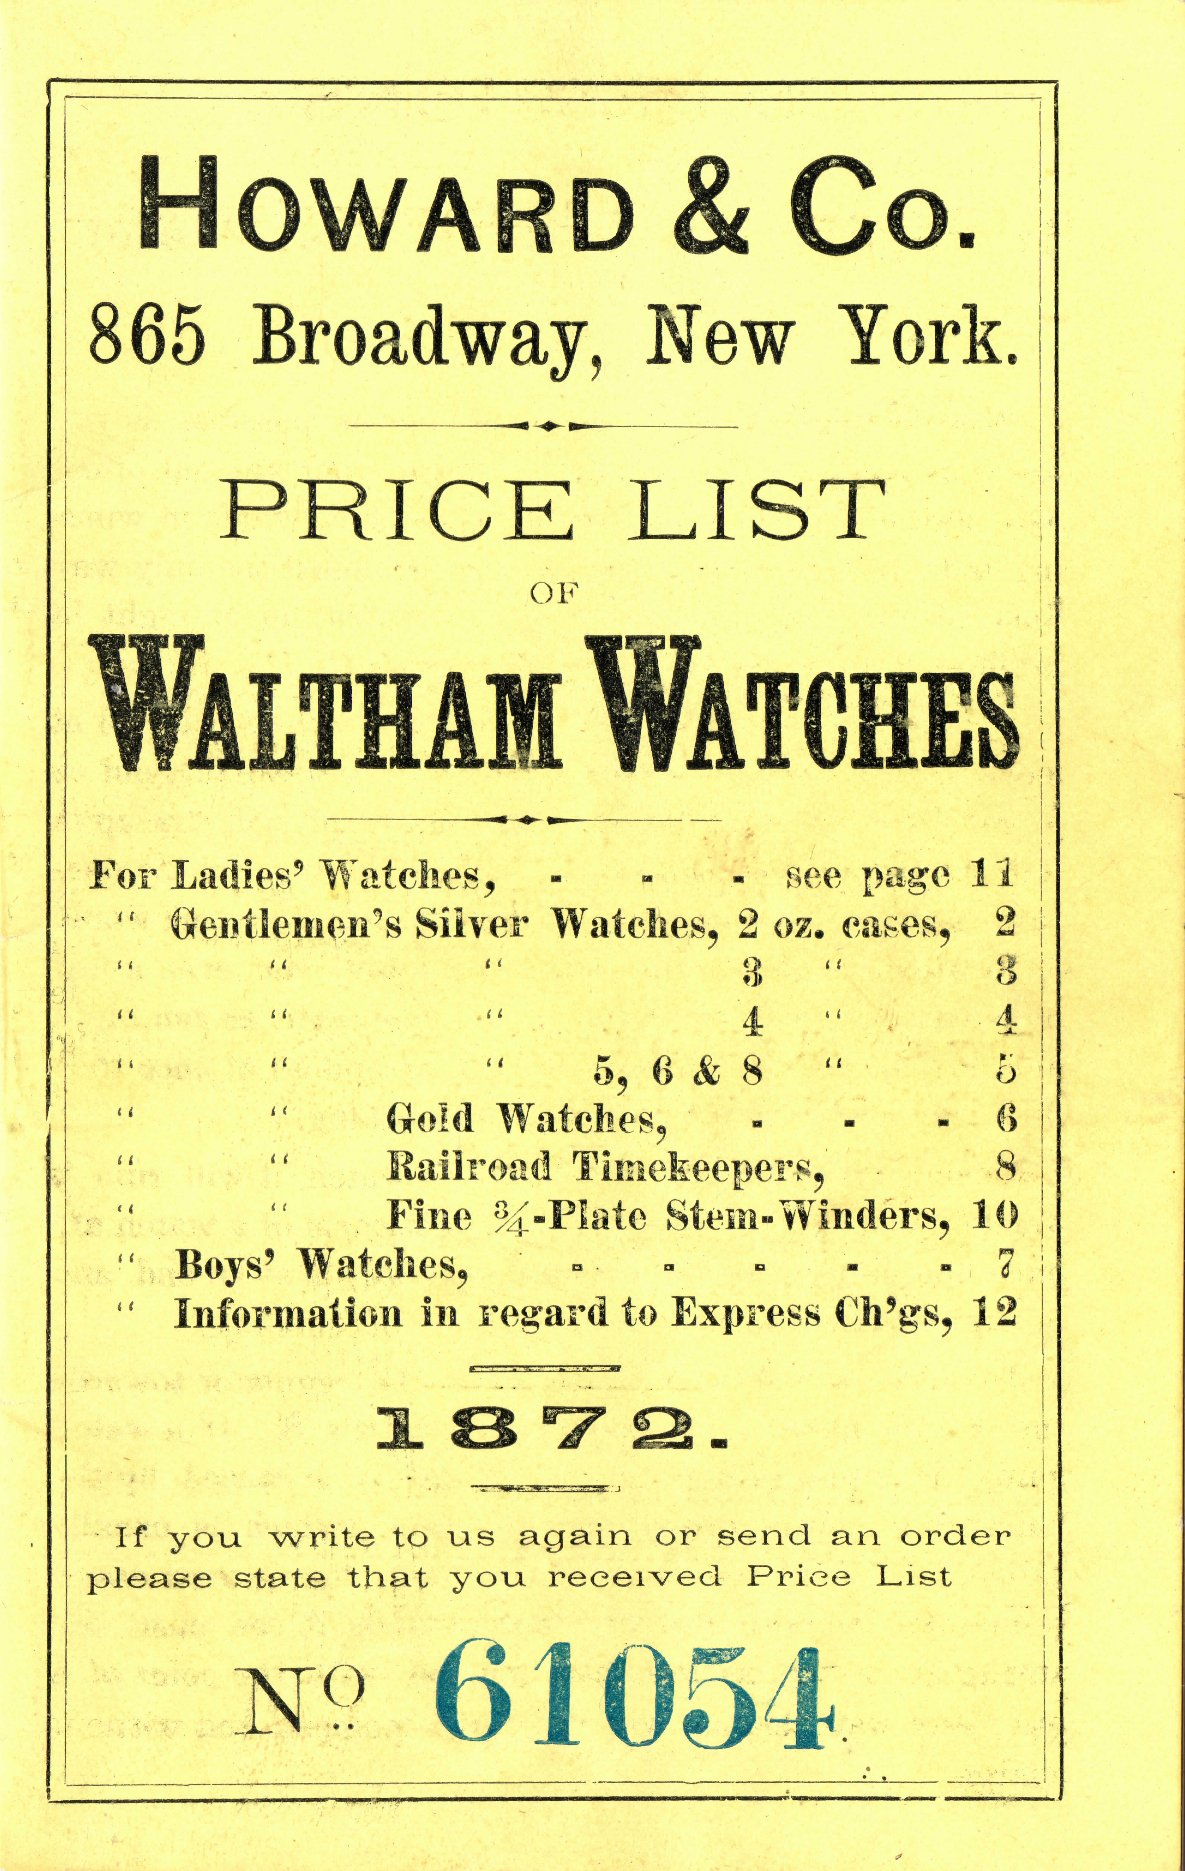 Howard & Co. Price List of Waltham Watches, 1872 Cover Image